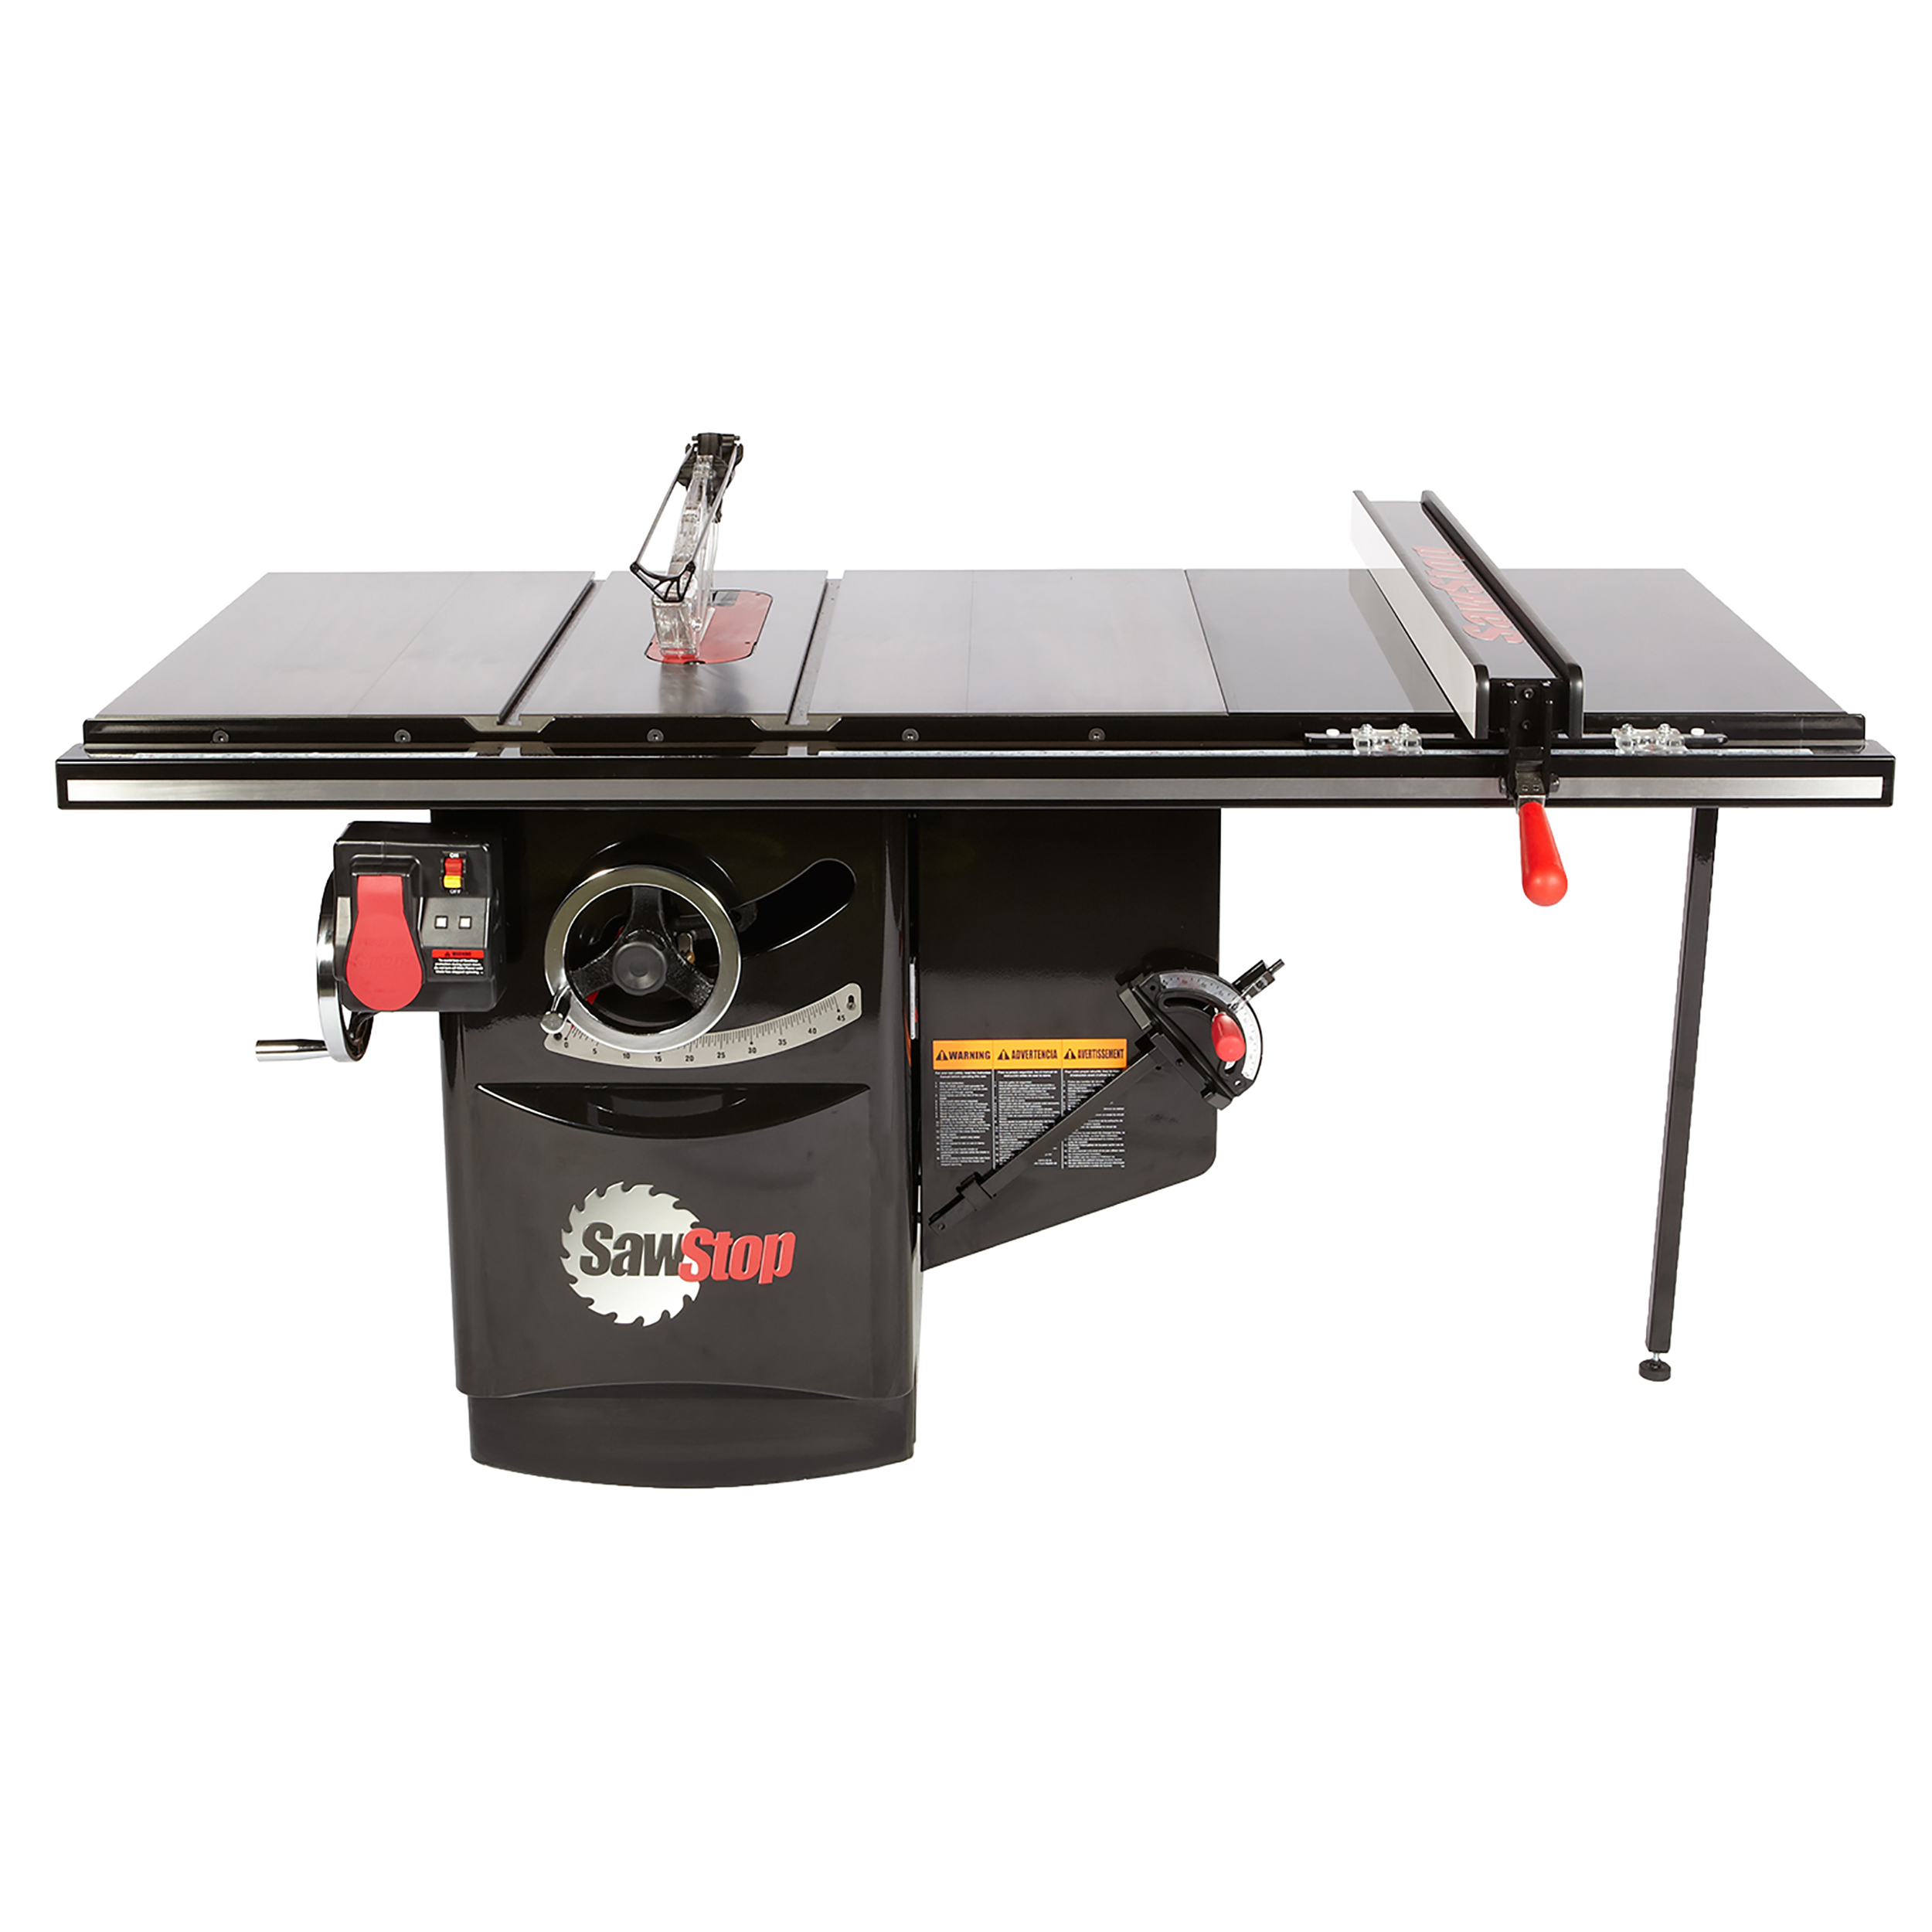 5 HP, 480V, 3PH Industrial Cabinet Saw with 36